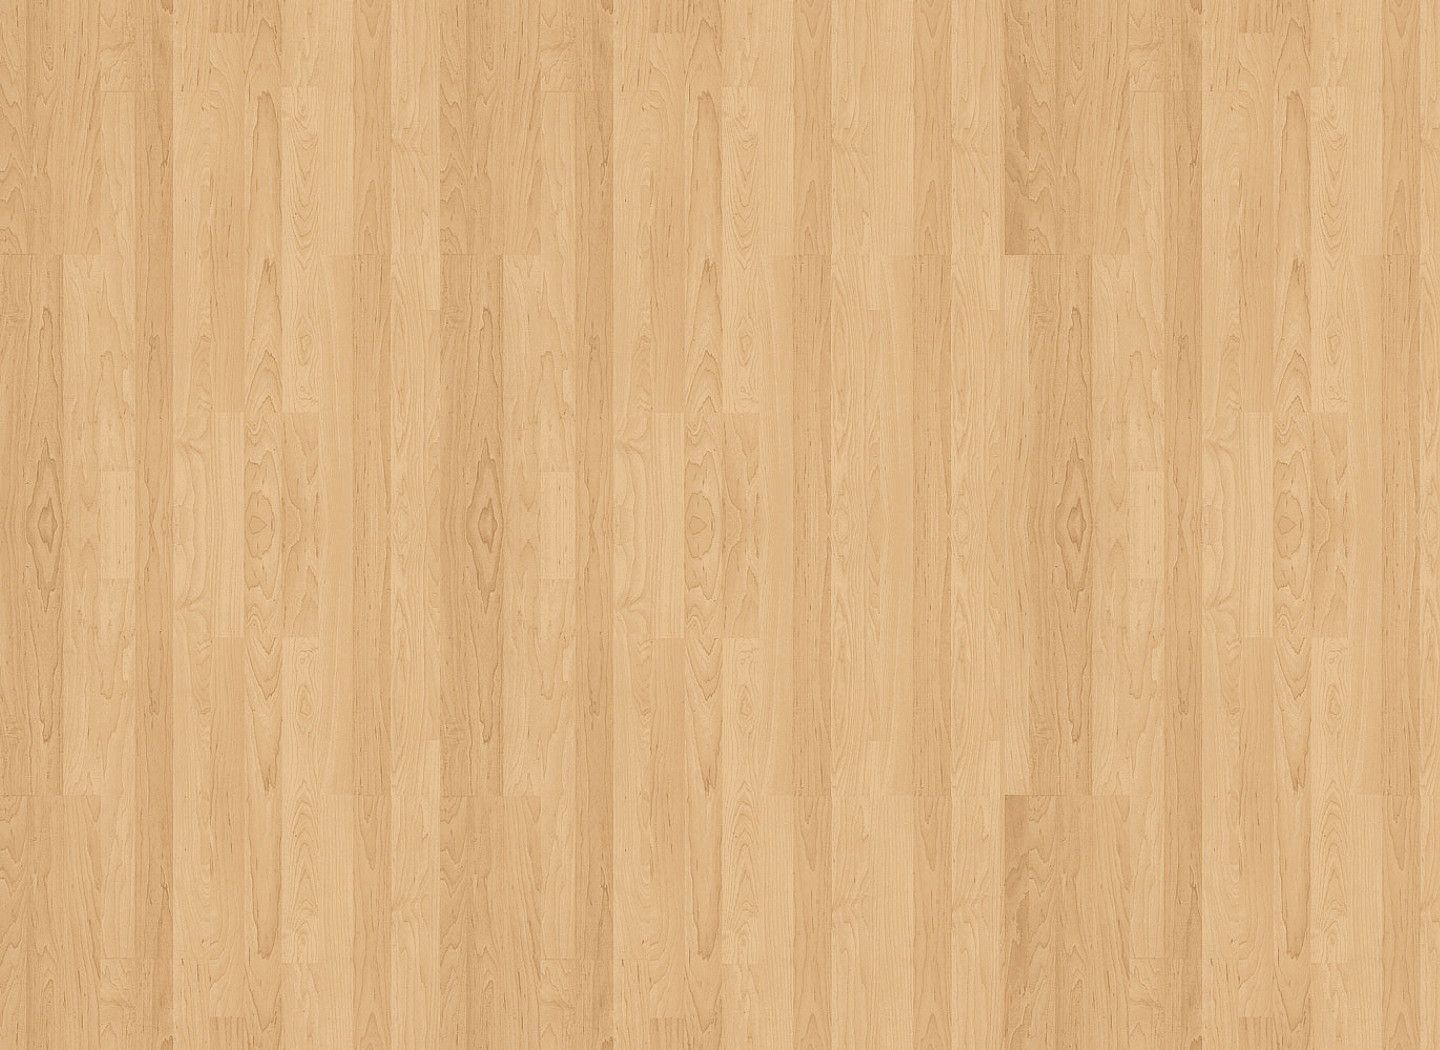 Light Wood Parquet Flooring Google Search Billeder